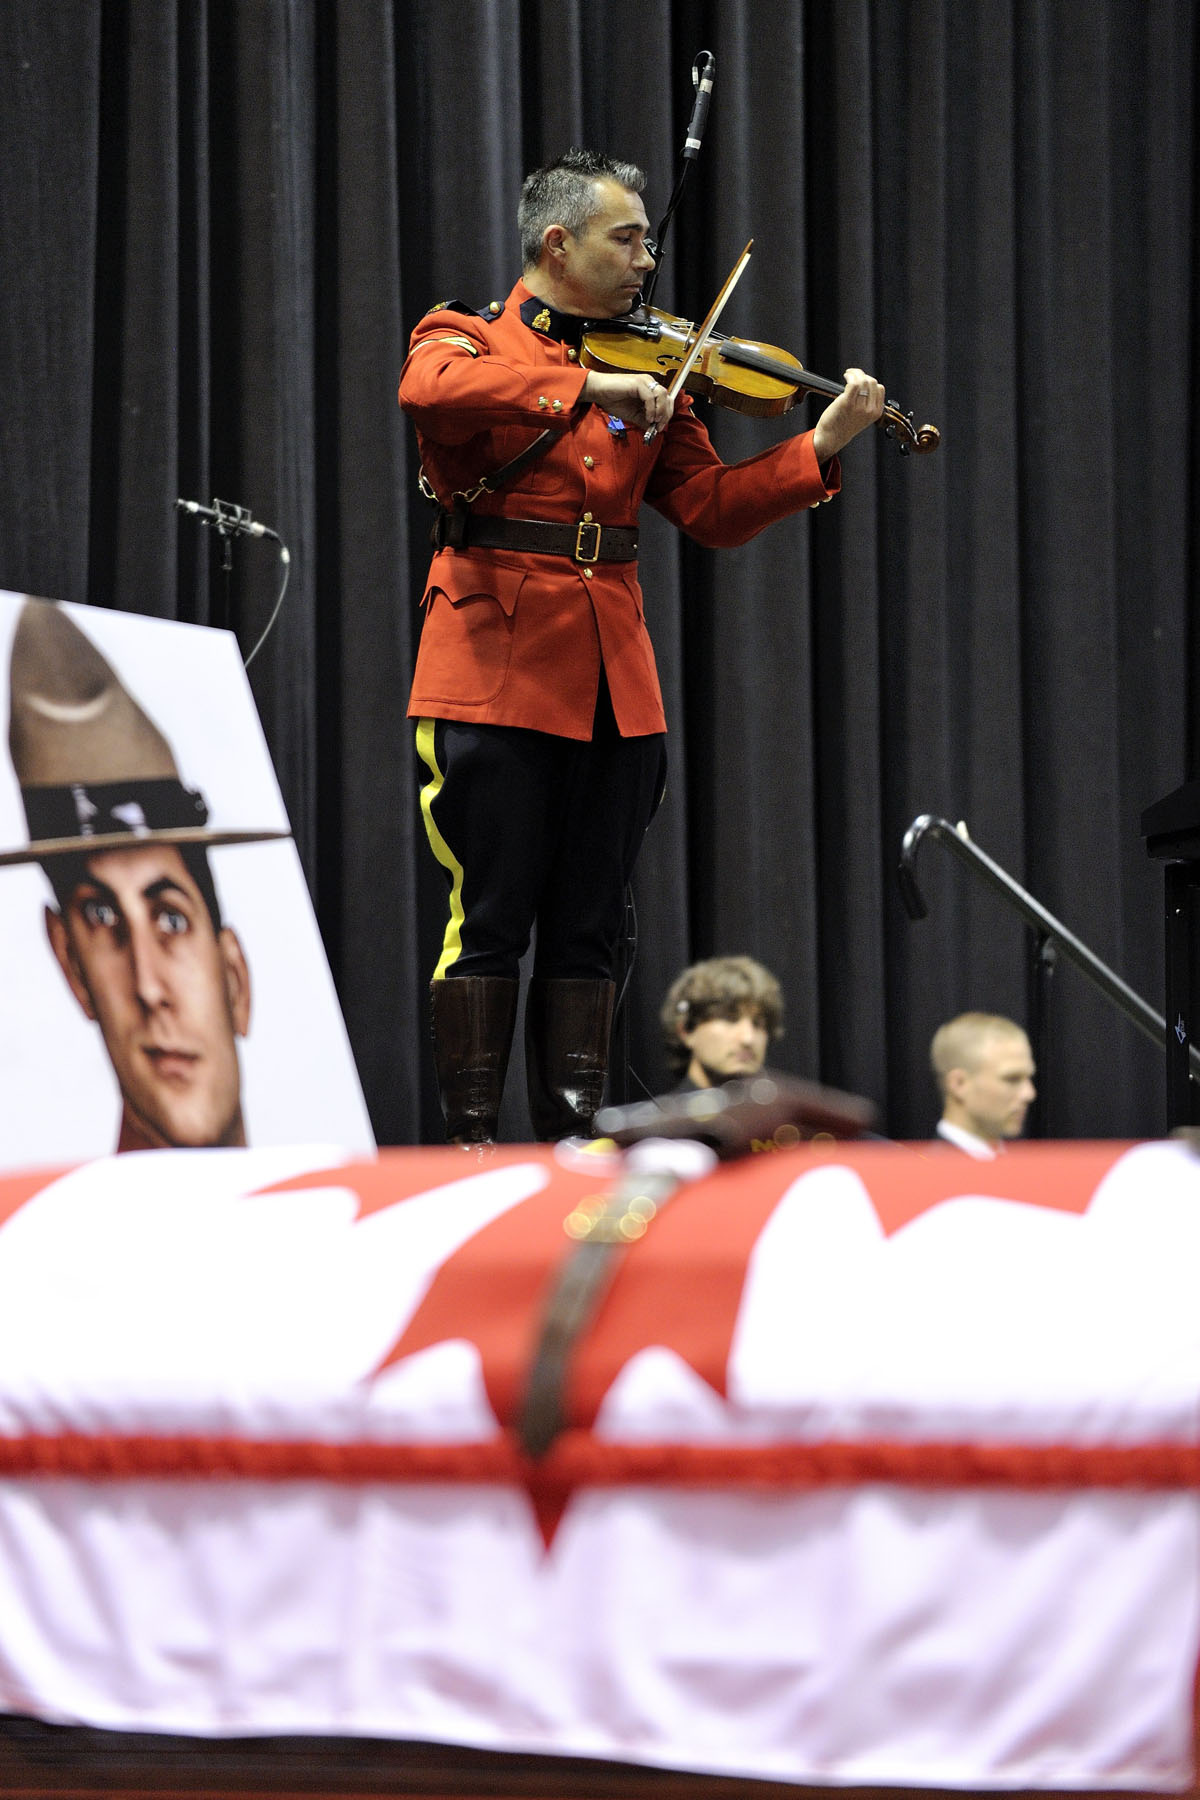 Codiac Rcmp Search For 2 Missing 14 Year Old Girls: The Governor General Of Canada > Photos > Funeral For